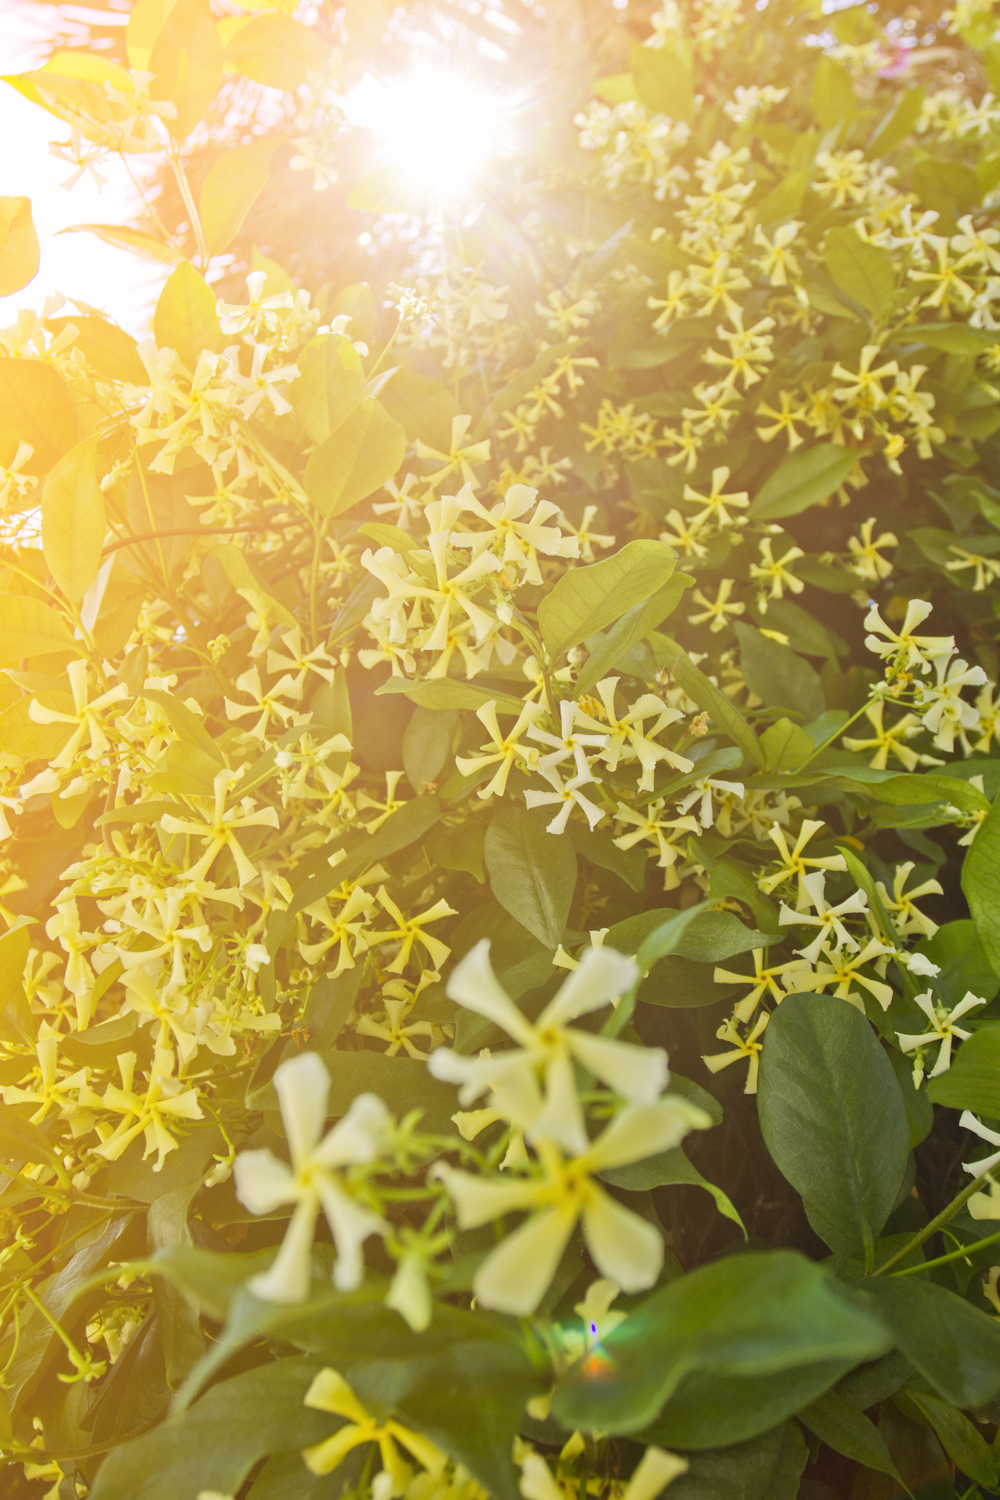 After a day and a half of the intoxicating aroma, I was finally able to ask a local what the flowery bush was that emanated the fragrance. Confederate Jasmine.